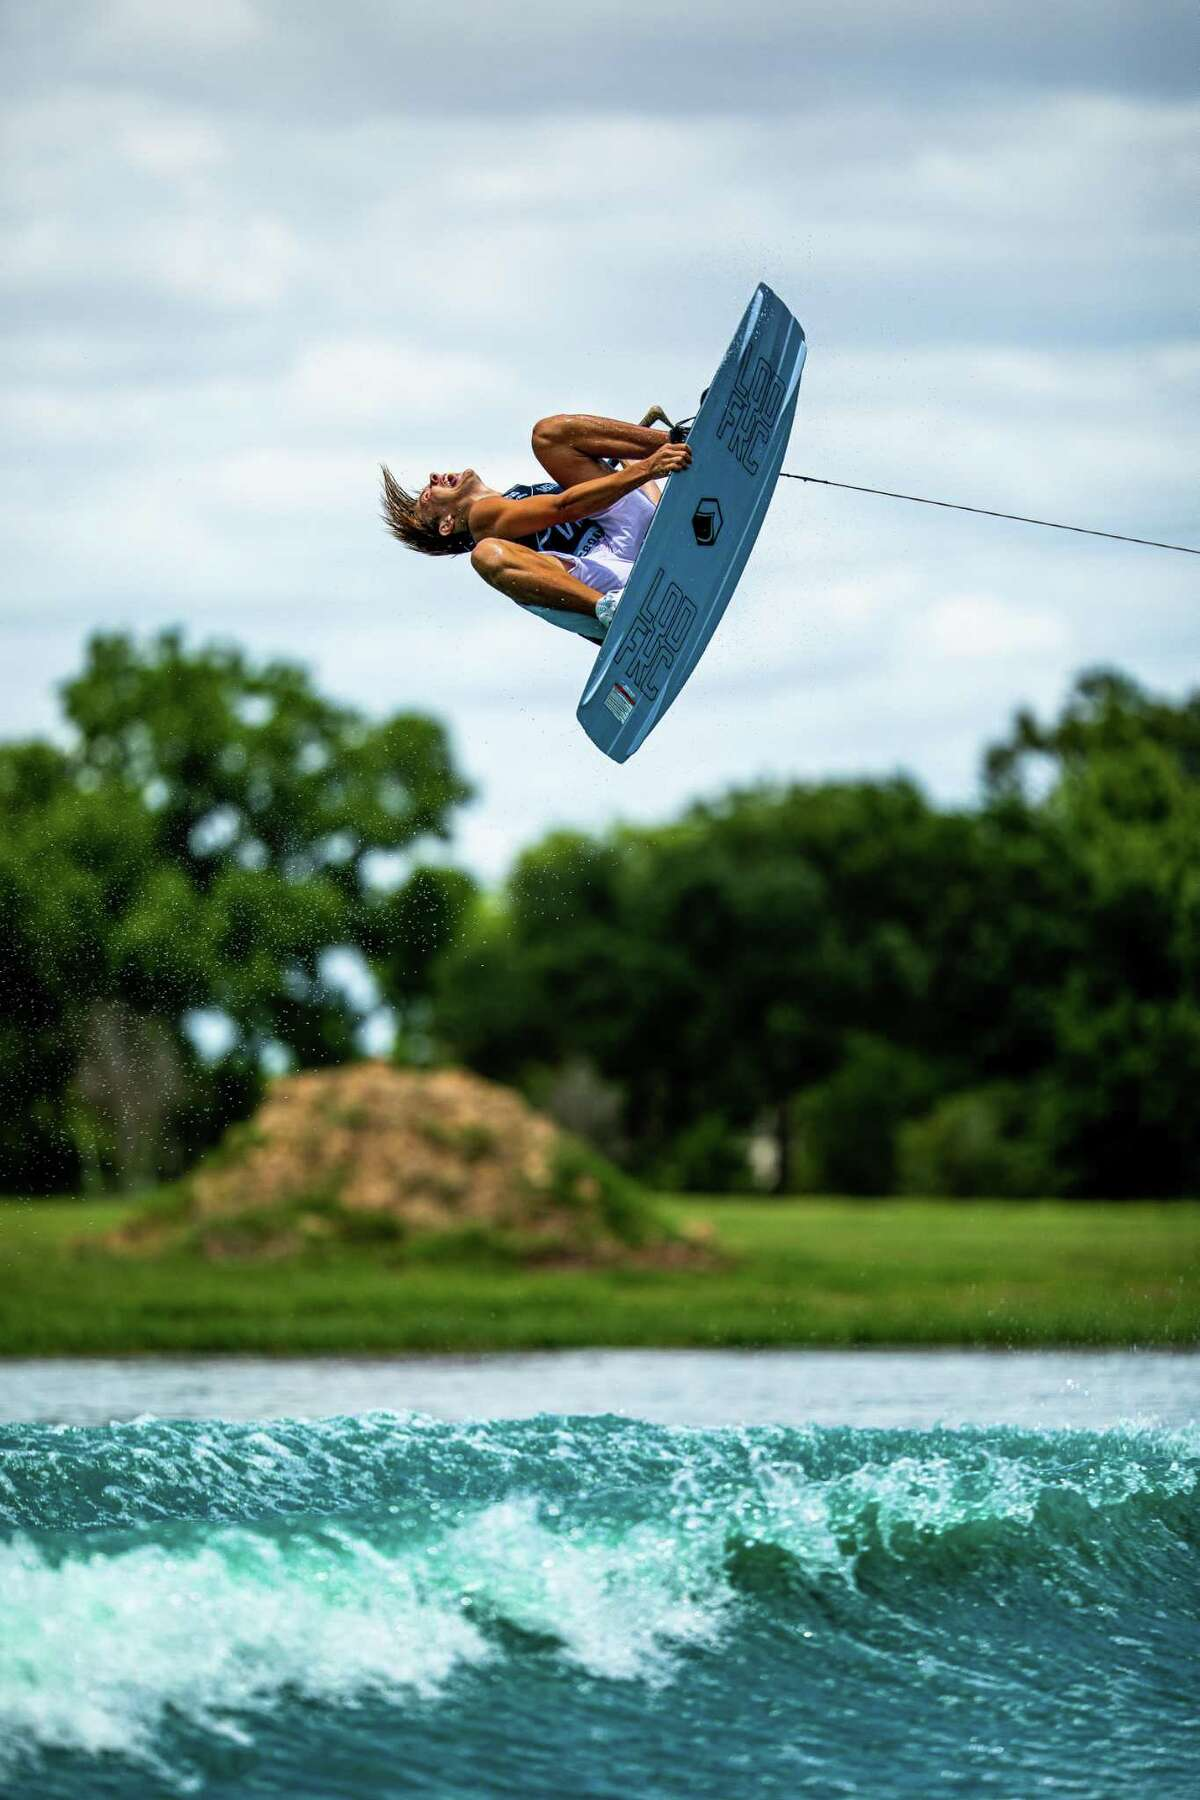 The Pro Wake Tour opened its 2021 season with a flourish June 12 at August Lakes in Katy, with many of the world's best wakeboarders and wakesurfers competing.